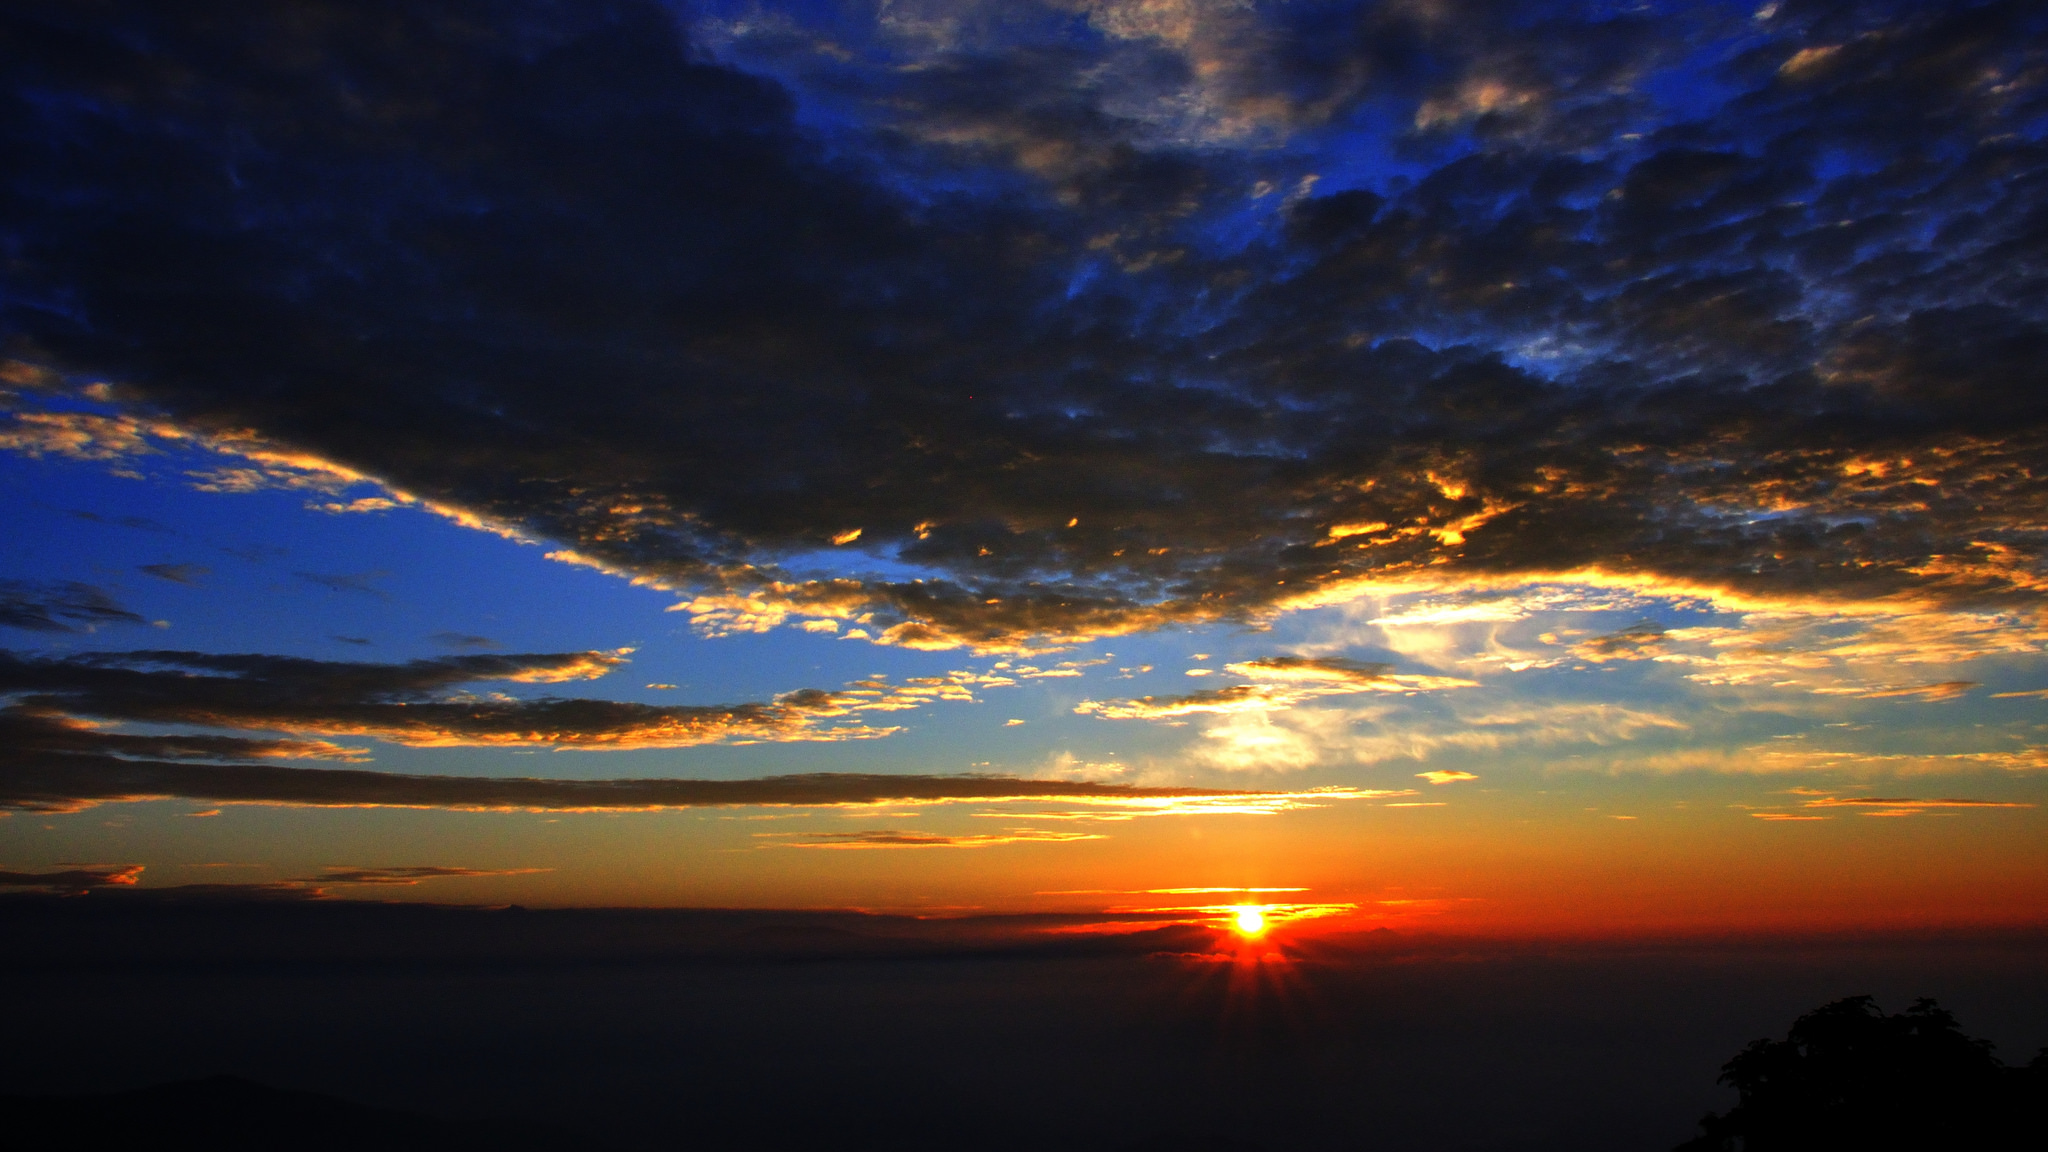 Sunrise & Sunset from Tiger Hill